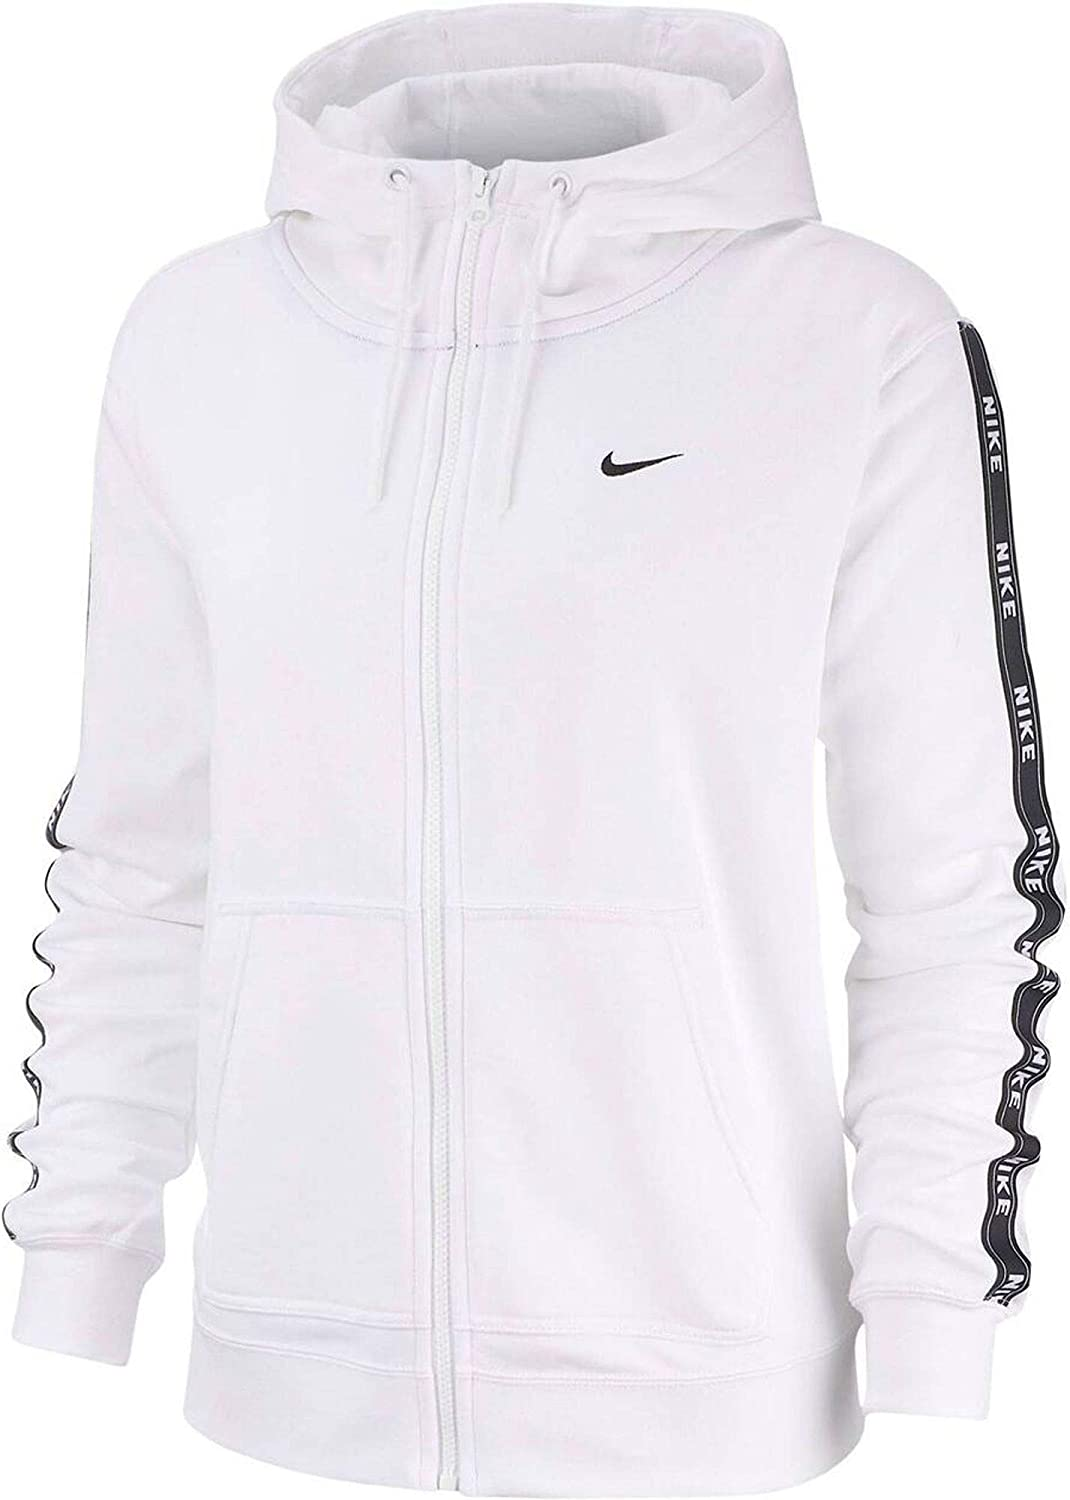 Nike Hoodie Full Zip Logo Tape Sweat à Capuche Femme